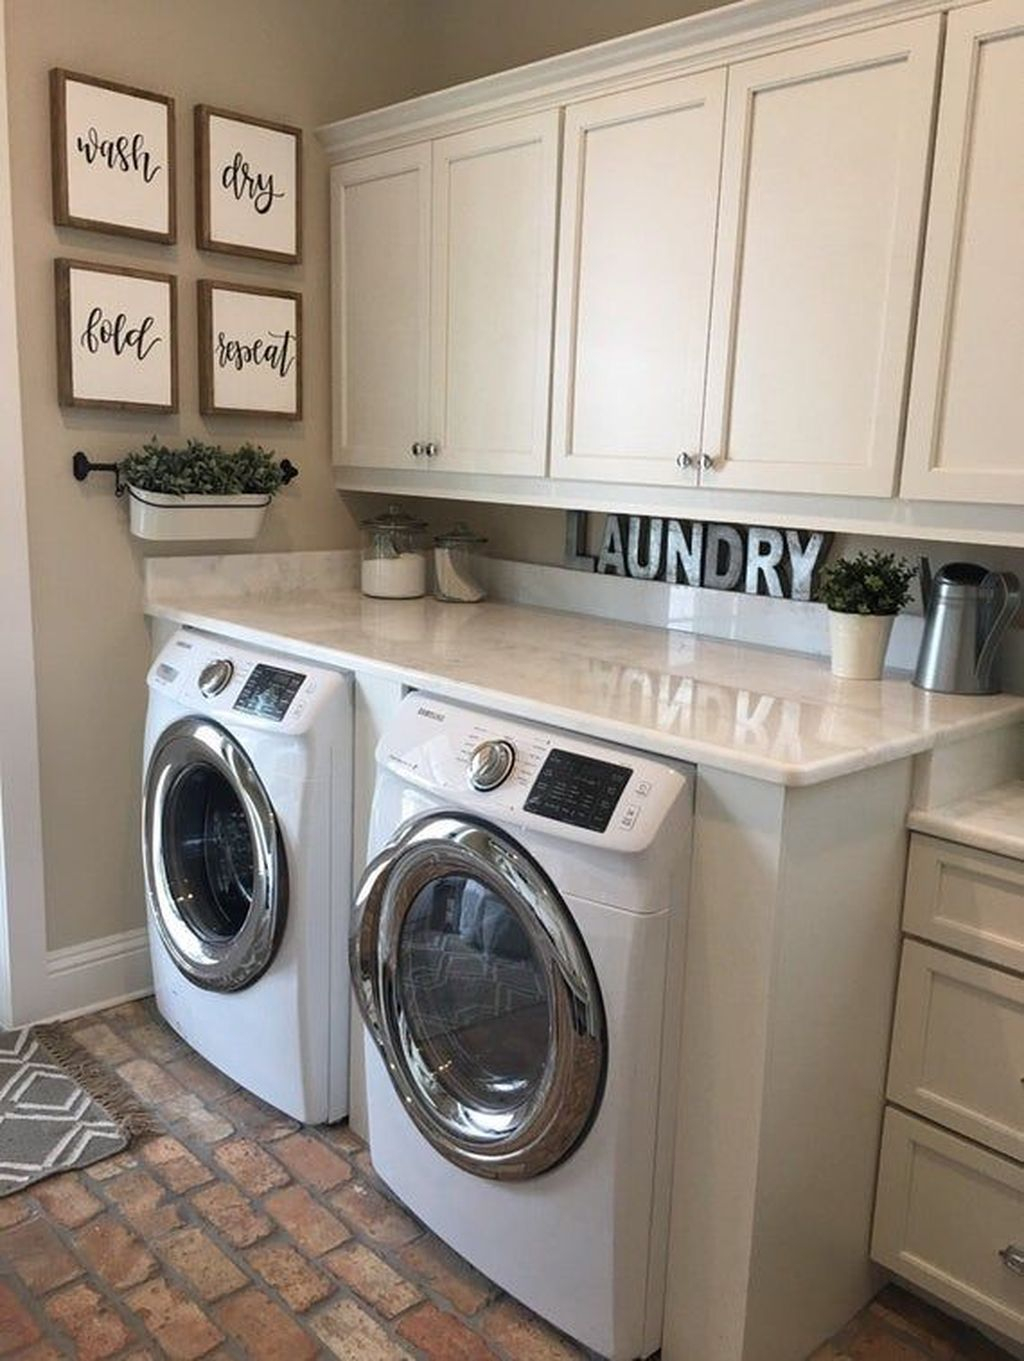 Enchanting Diy Easy Laundry Room Sign Ideas You Need To Try 29